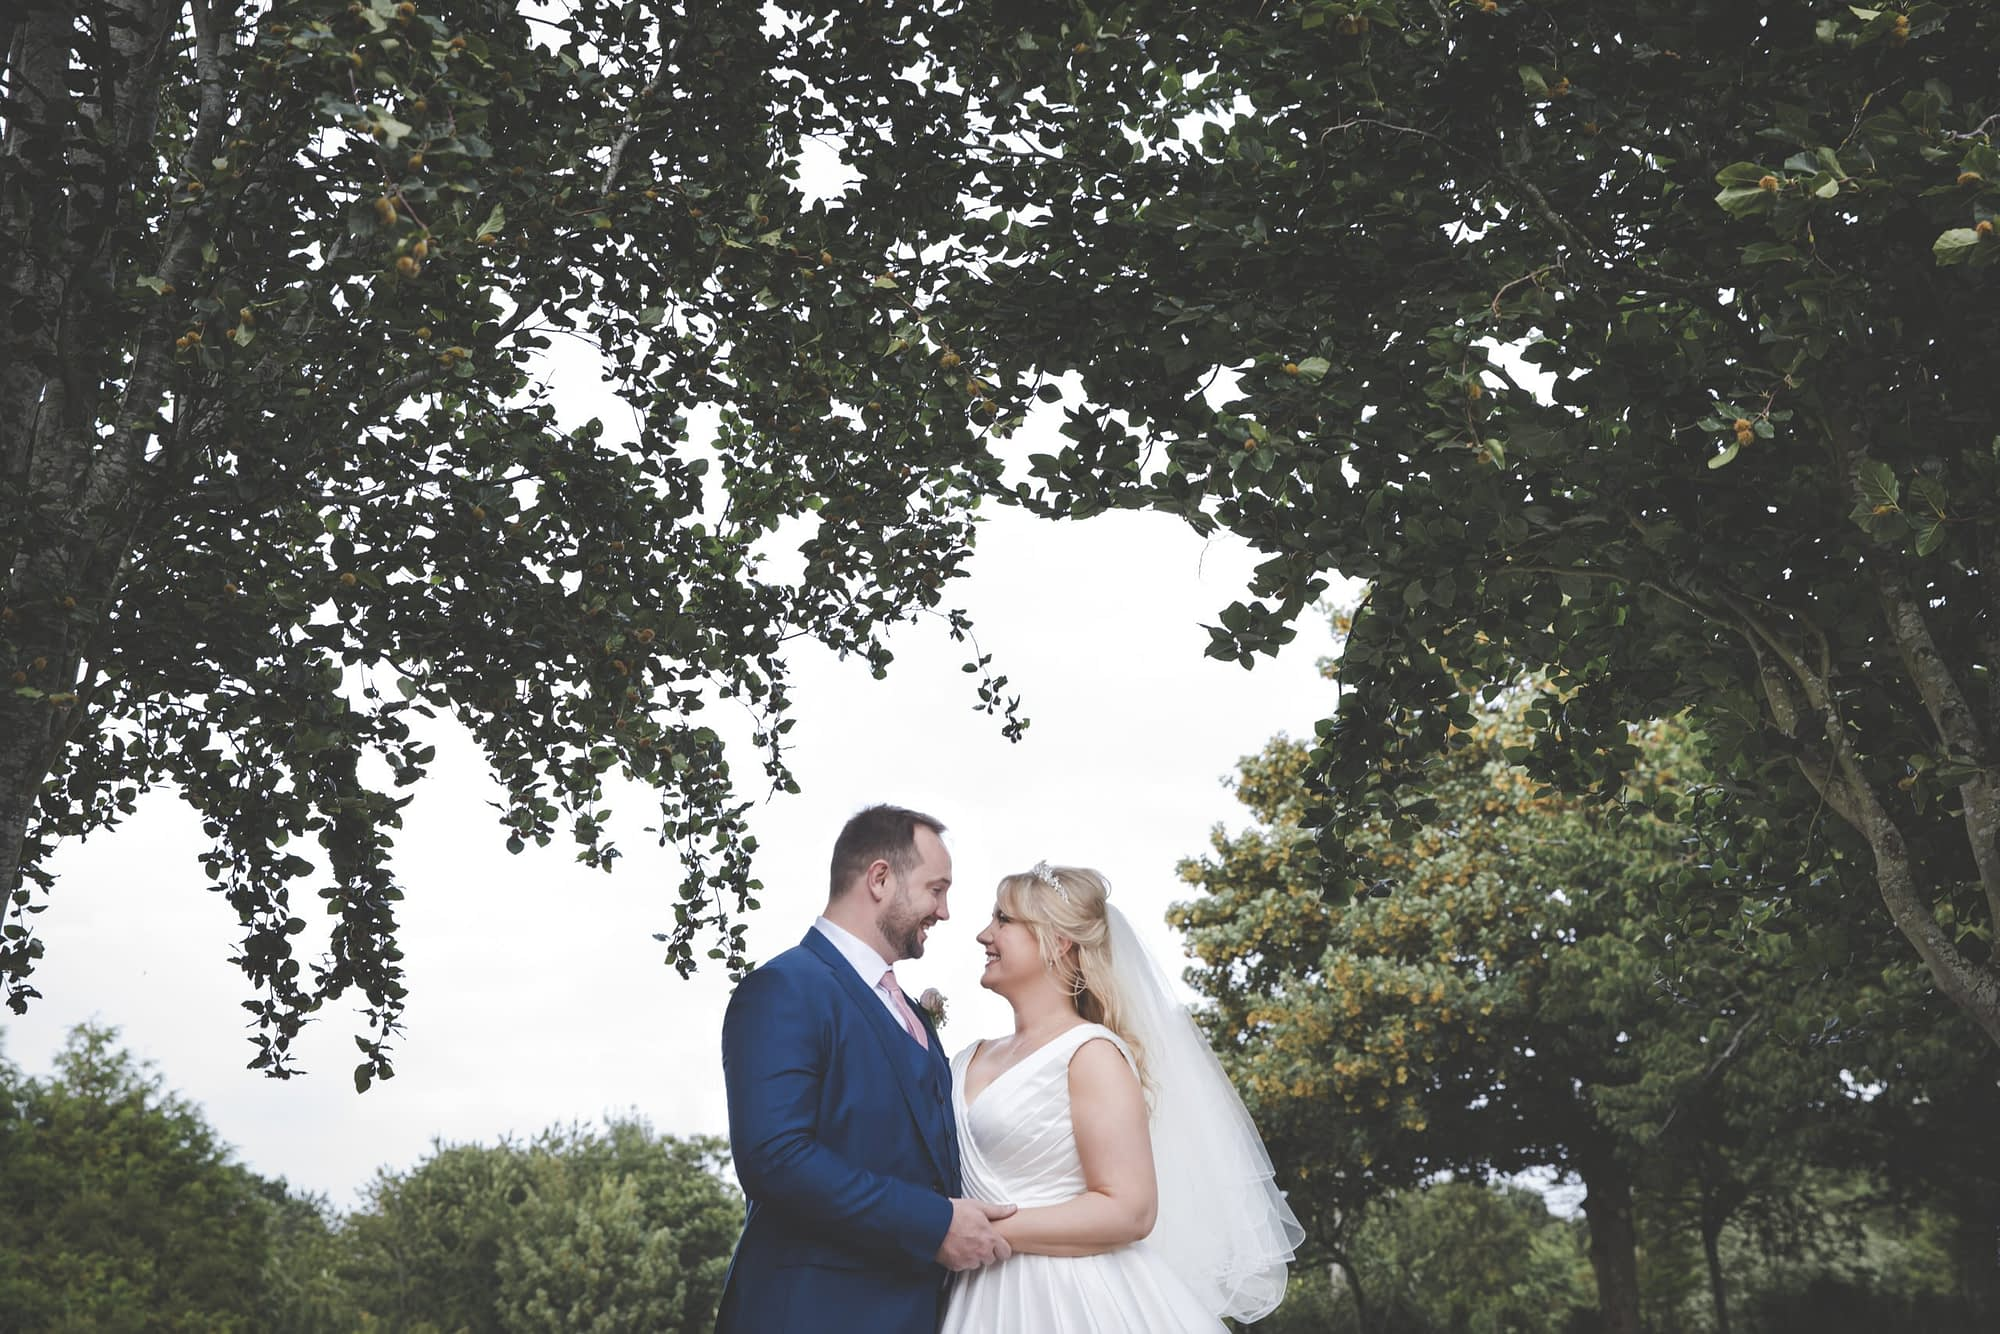 bride and groom looking at each other outside under trees